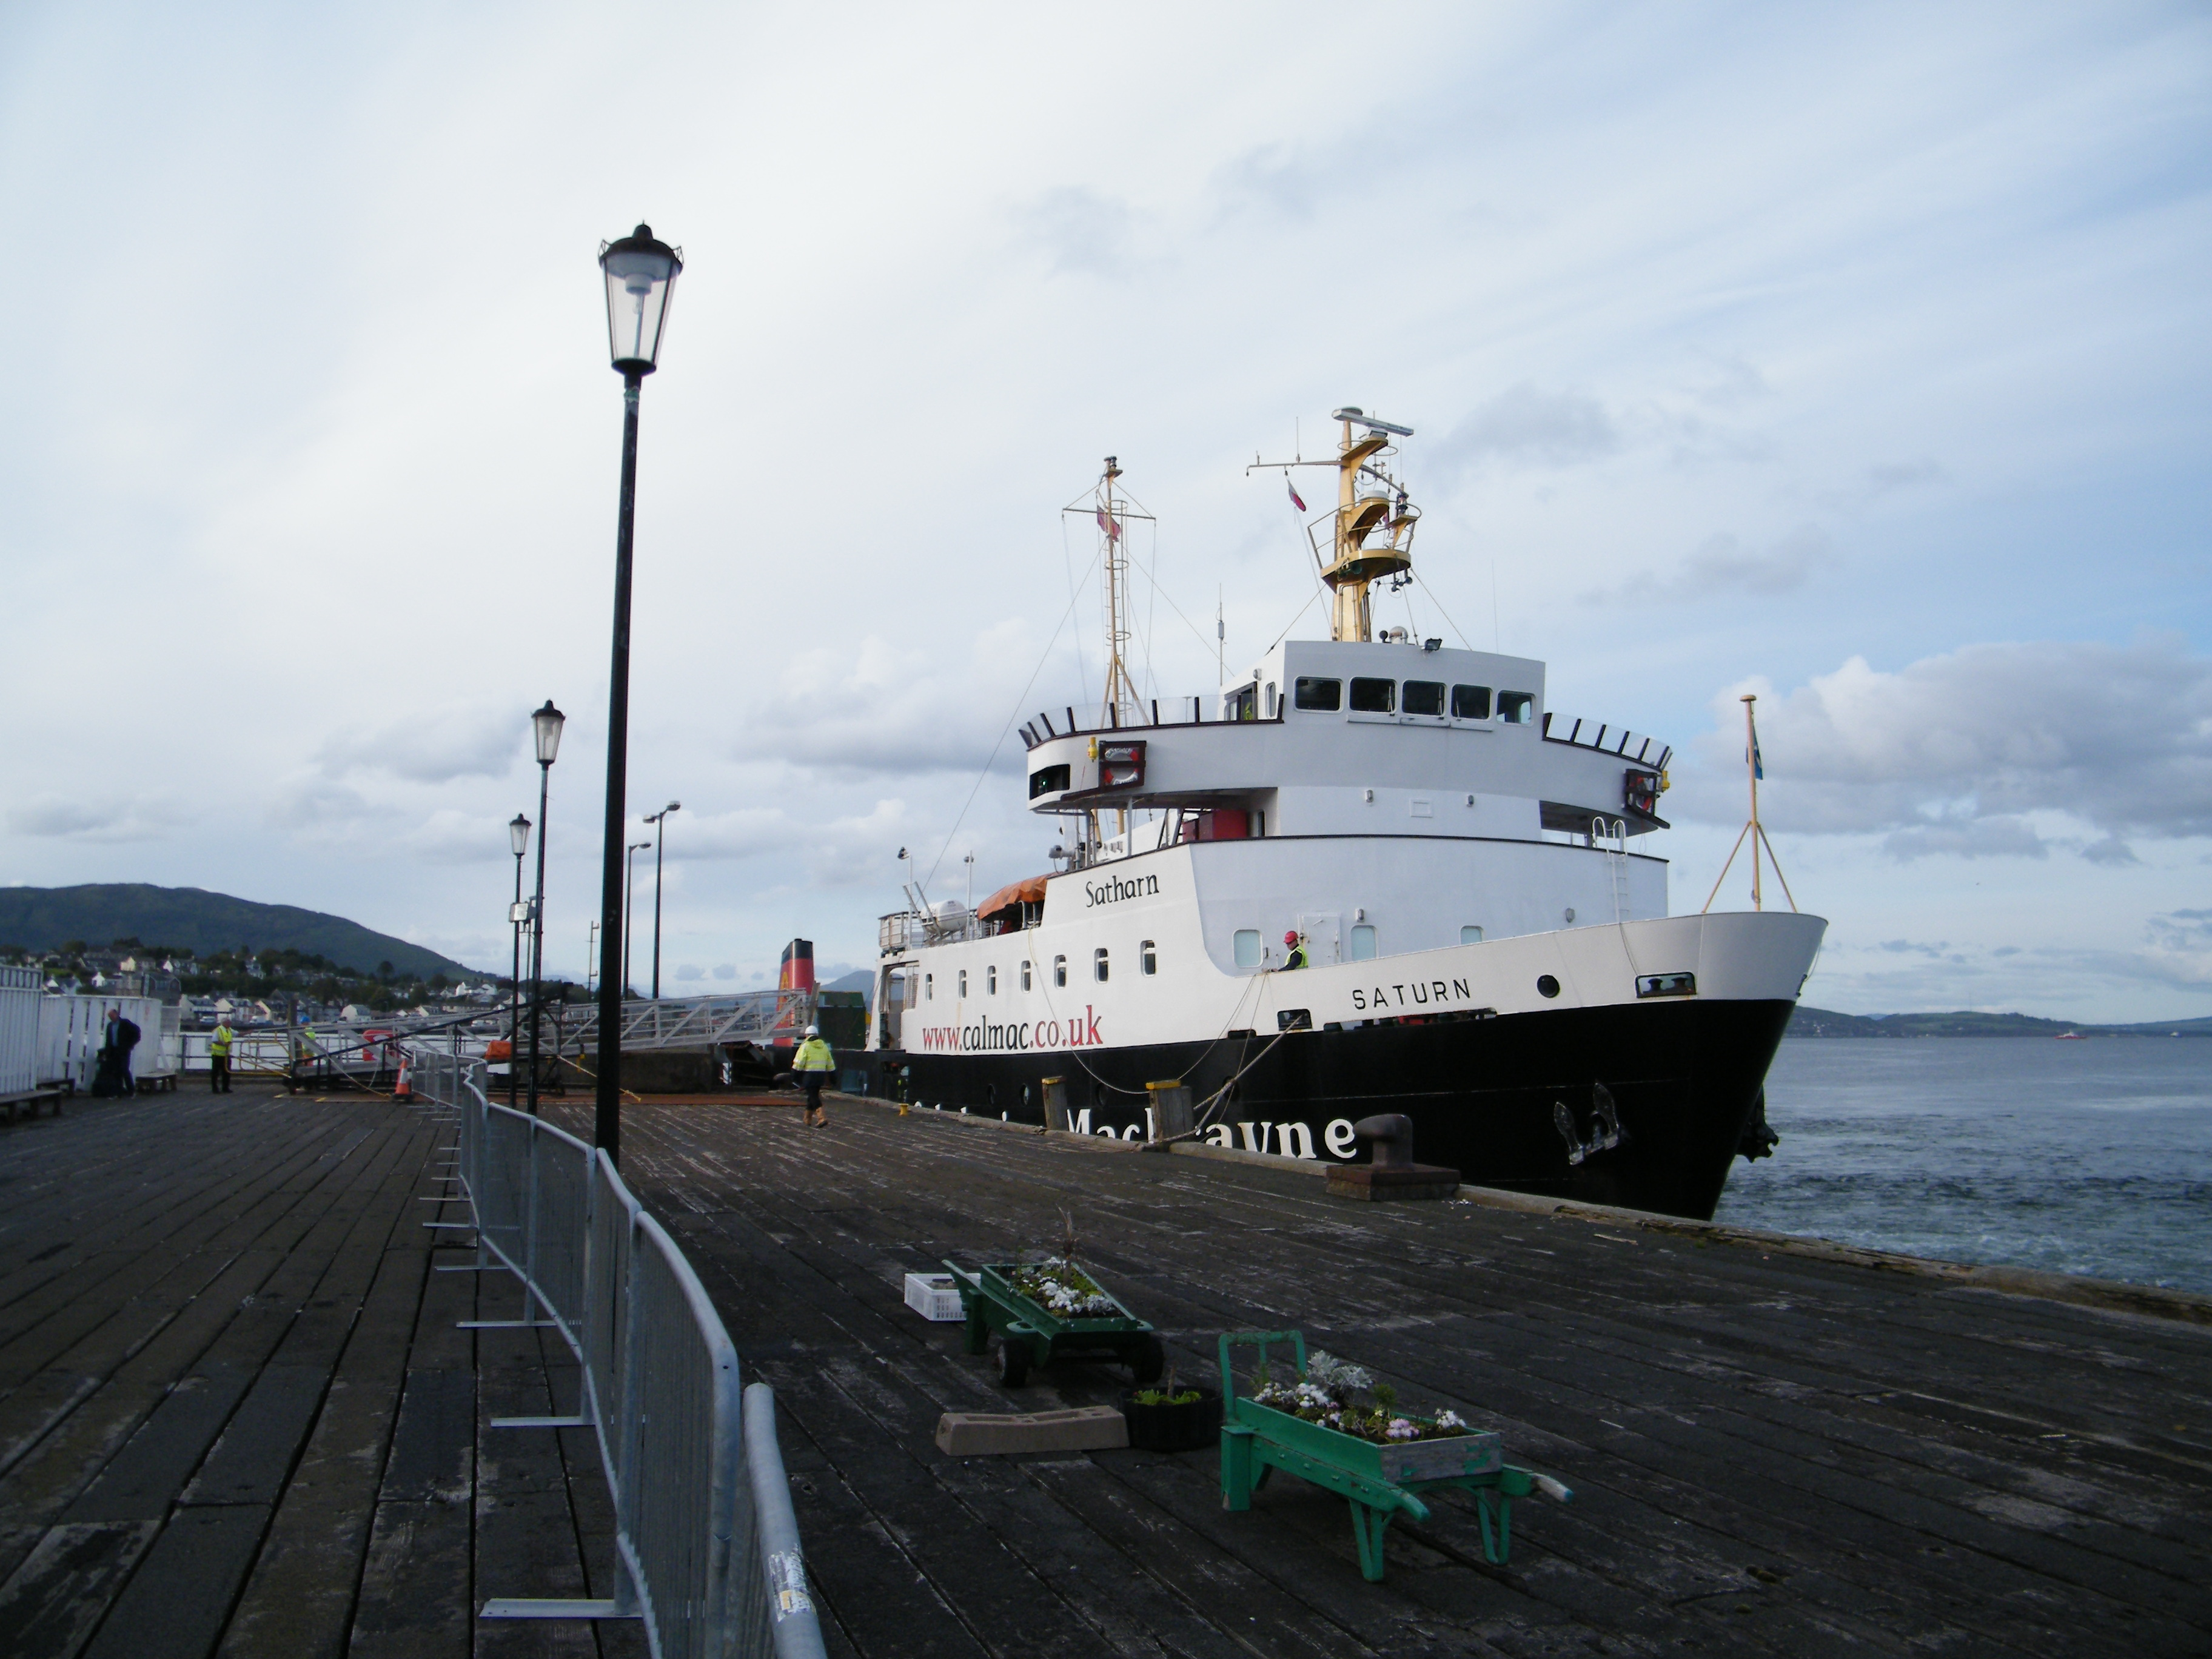 Saturn at Dunoon (Ships of CalMac)